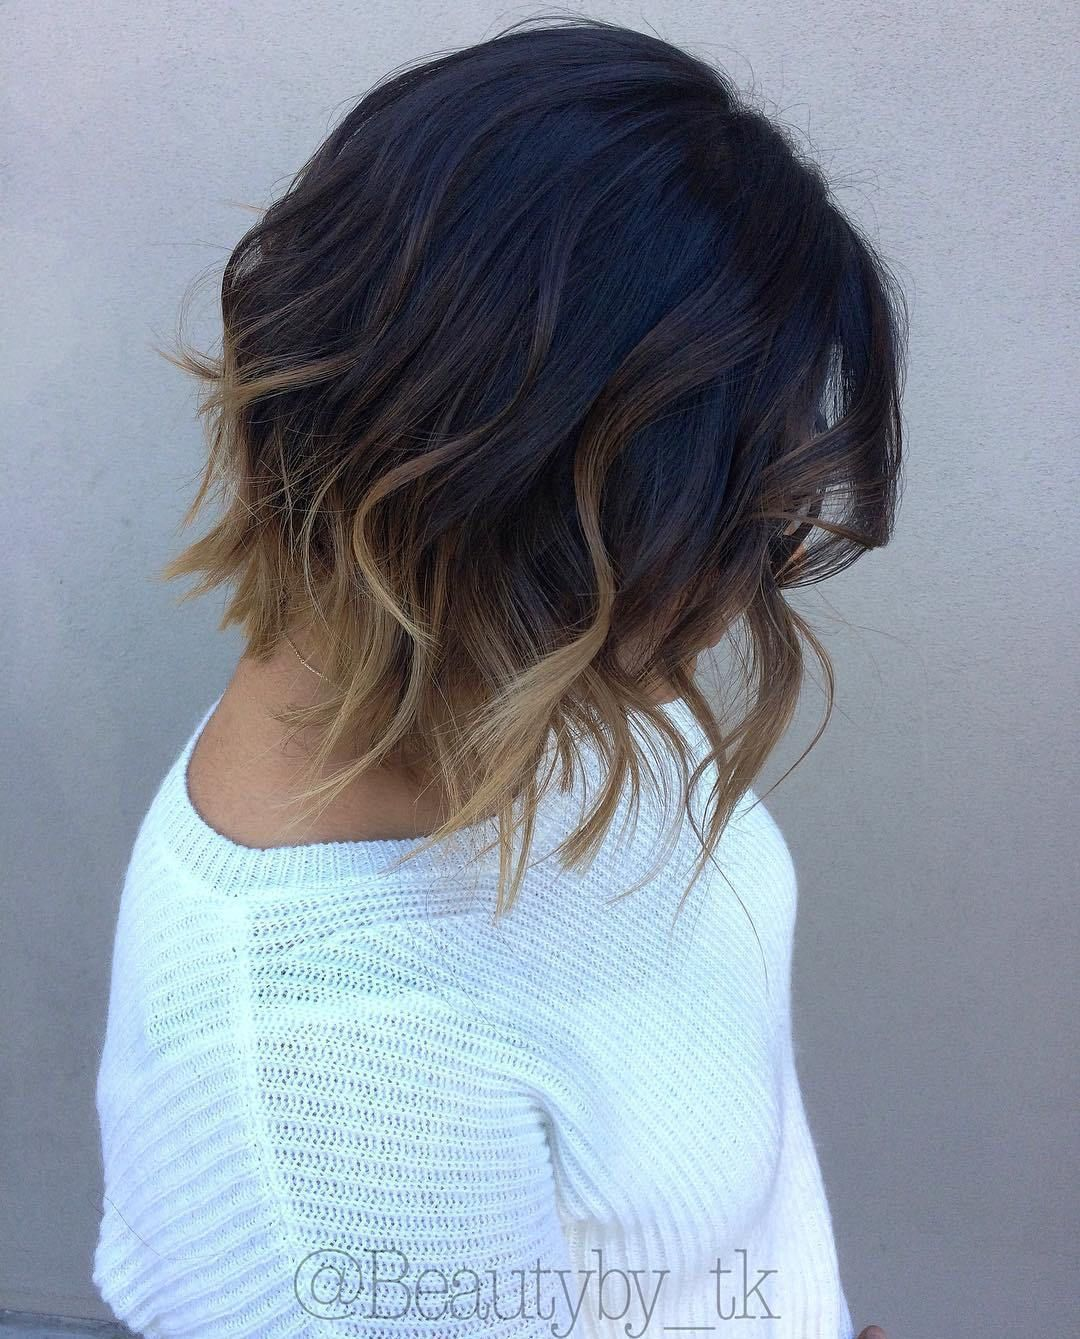 short ombre hair options for your cropped locks in black